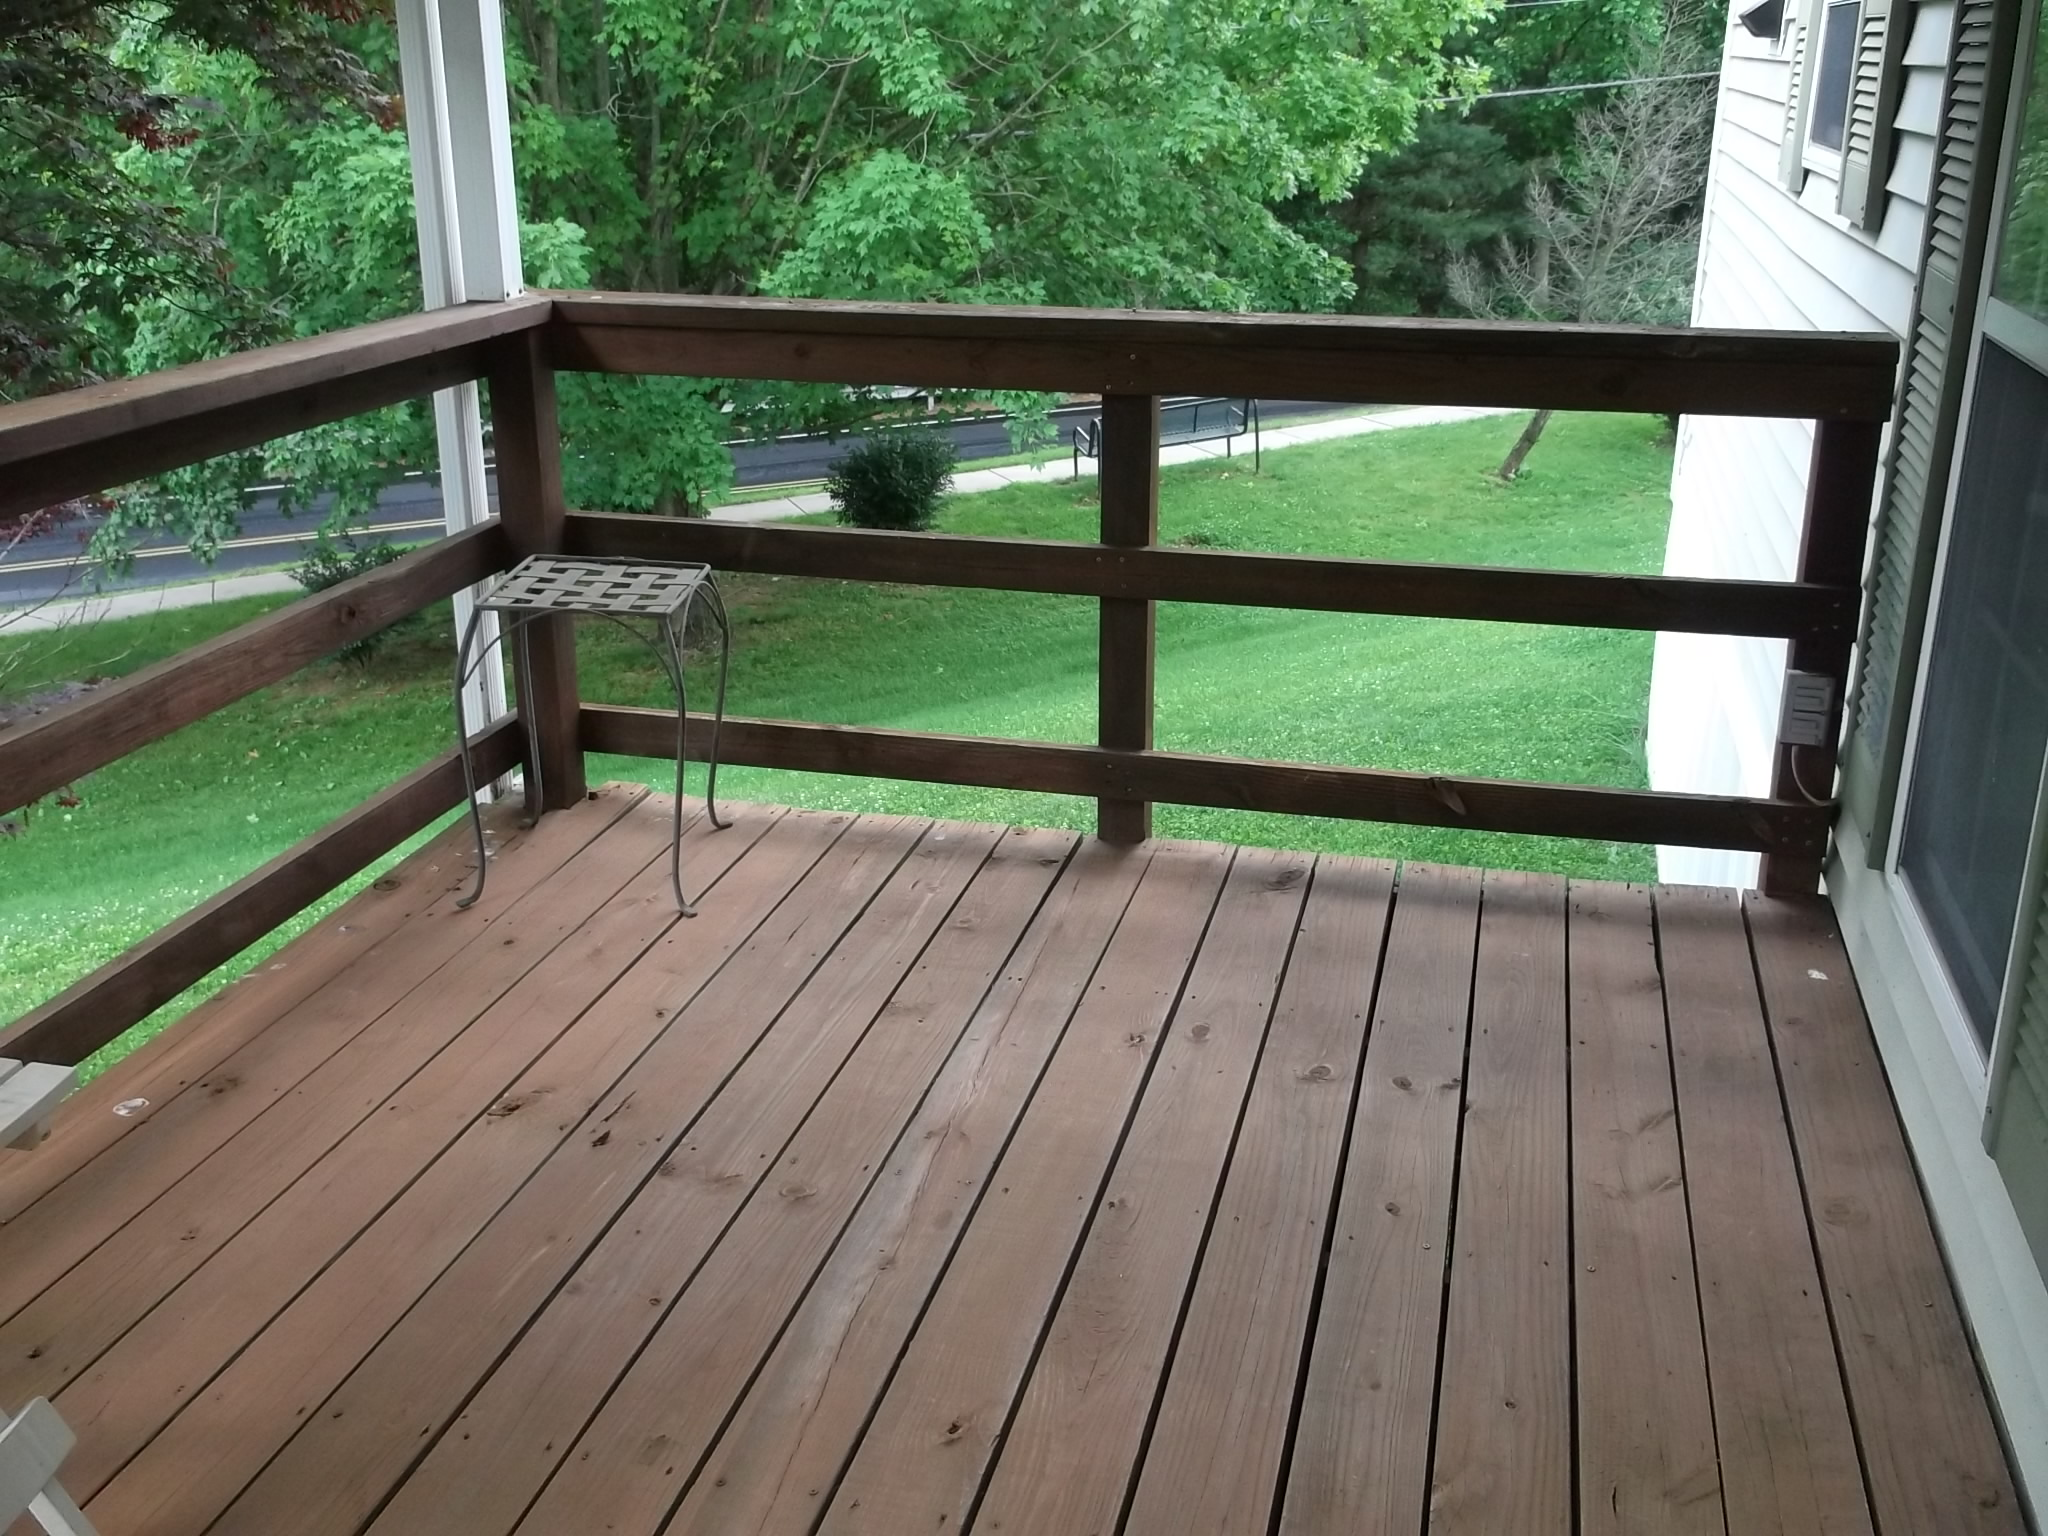 Horizontal Deck Railing Embraces Every Outdoor Living with ...